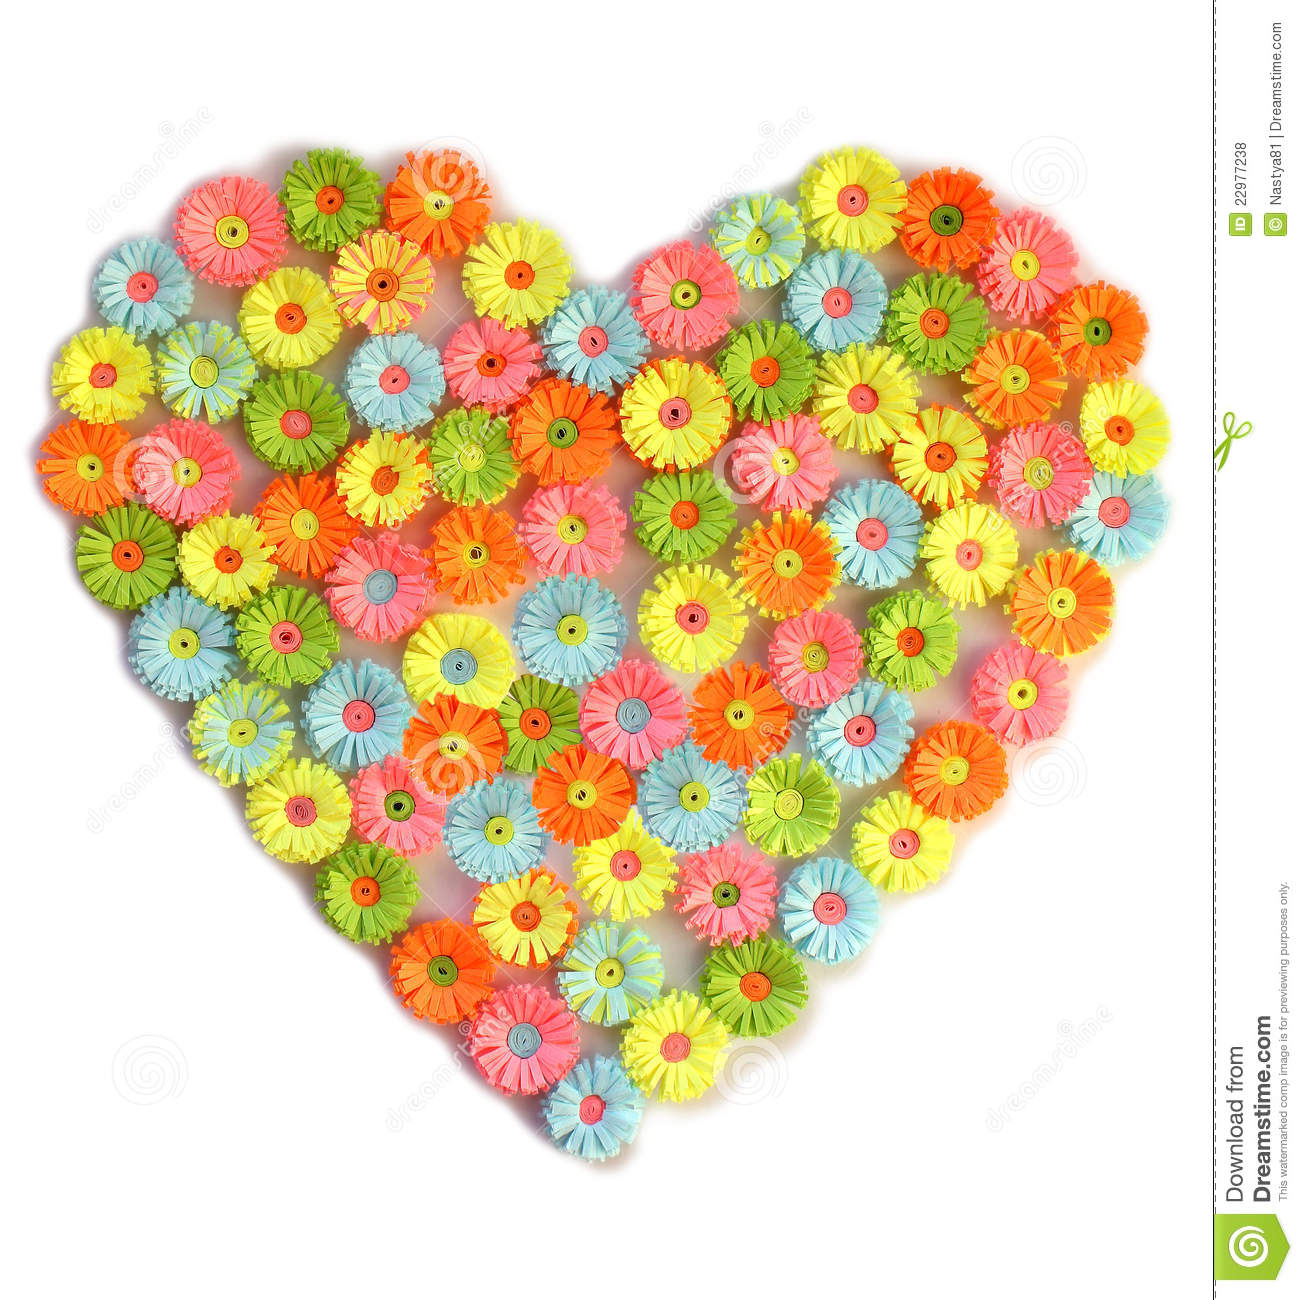 beautiful yellow flowers heart shaped stock photos, images, Beautiful flower